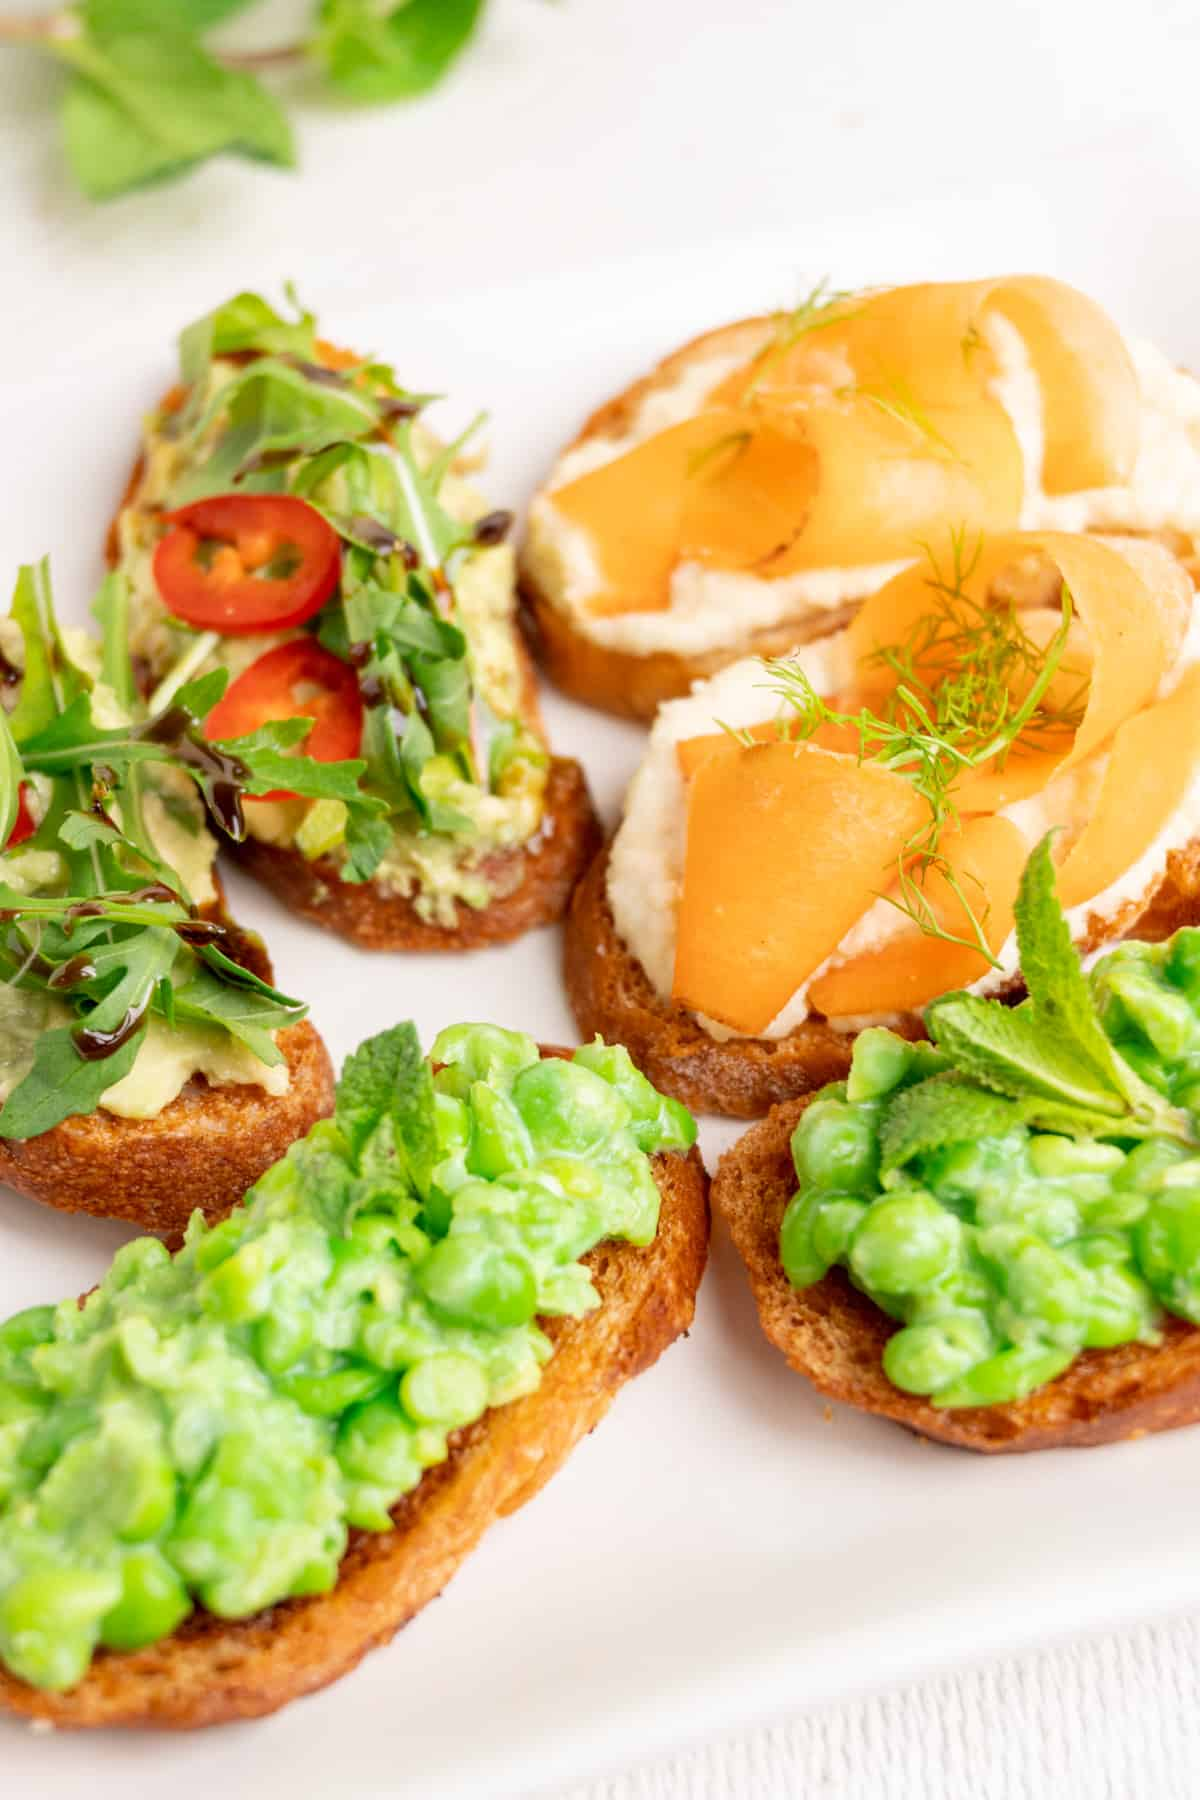 Crostini with various toppings served as appetizer on a white plate.